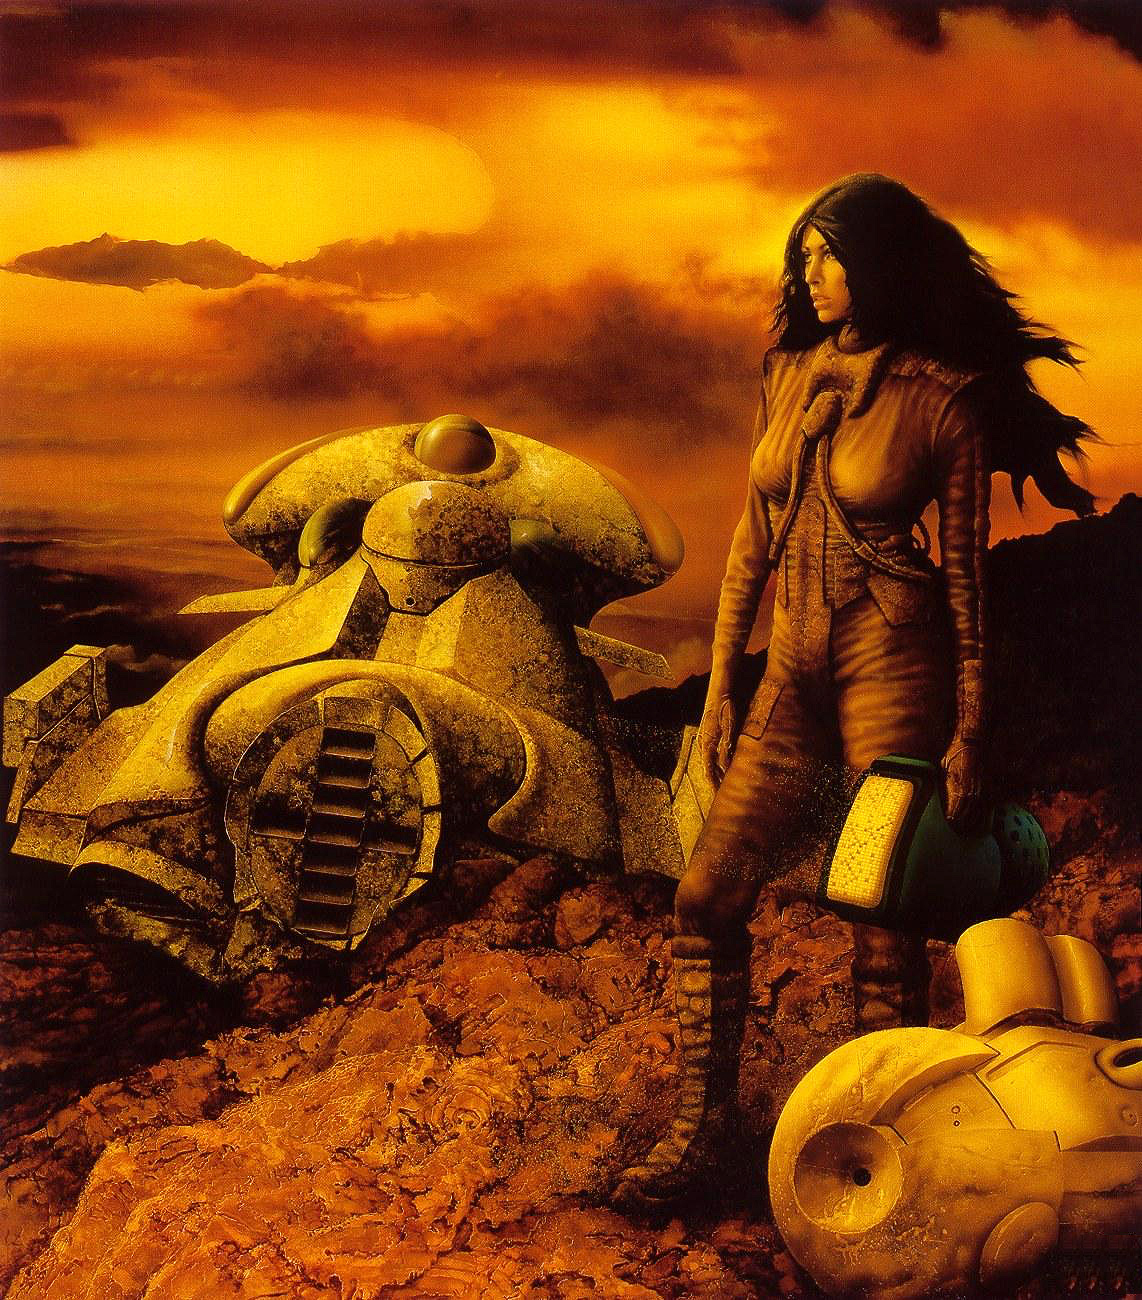 Jim Burns - Brother to Demons Brother to Gods